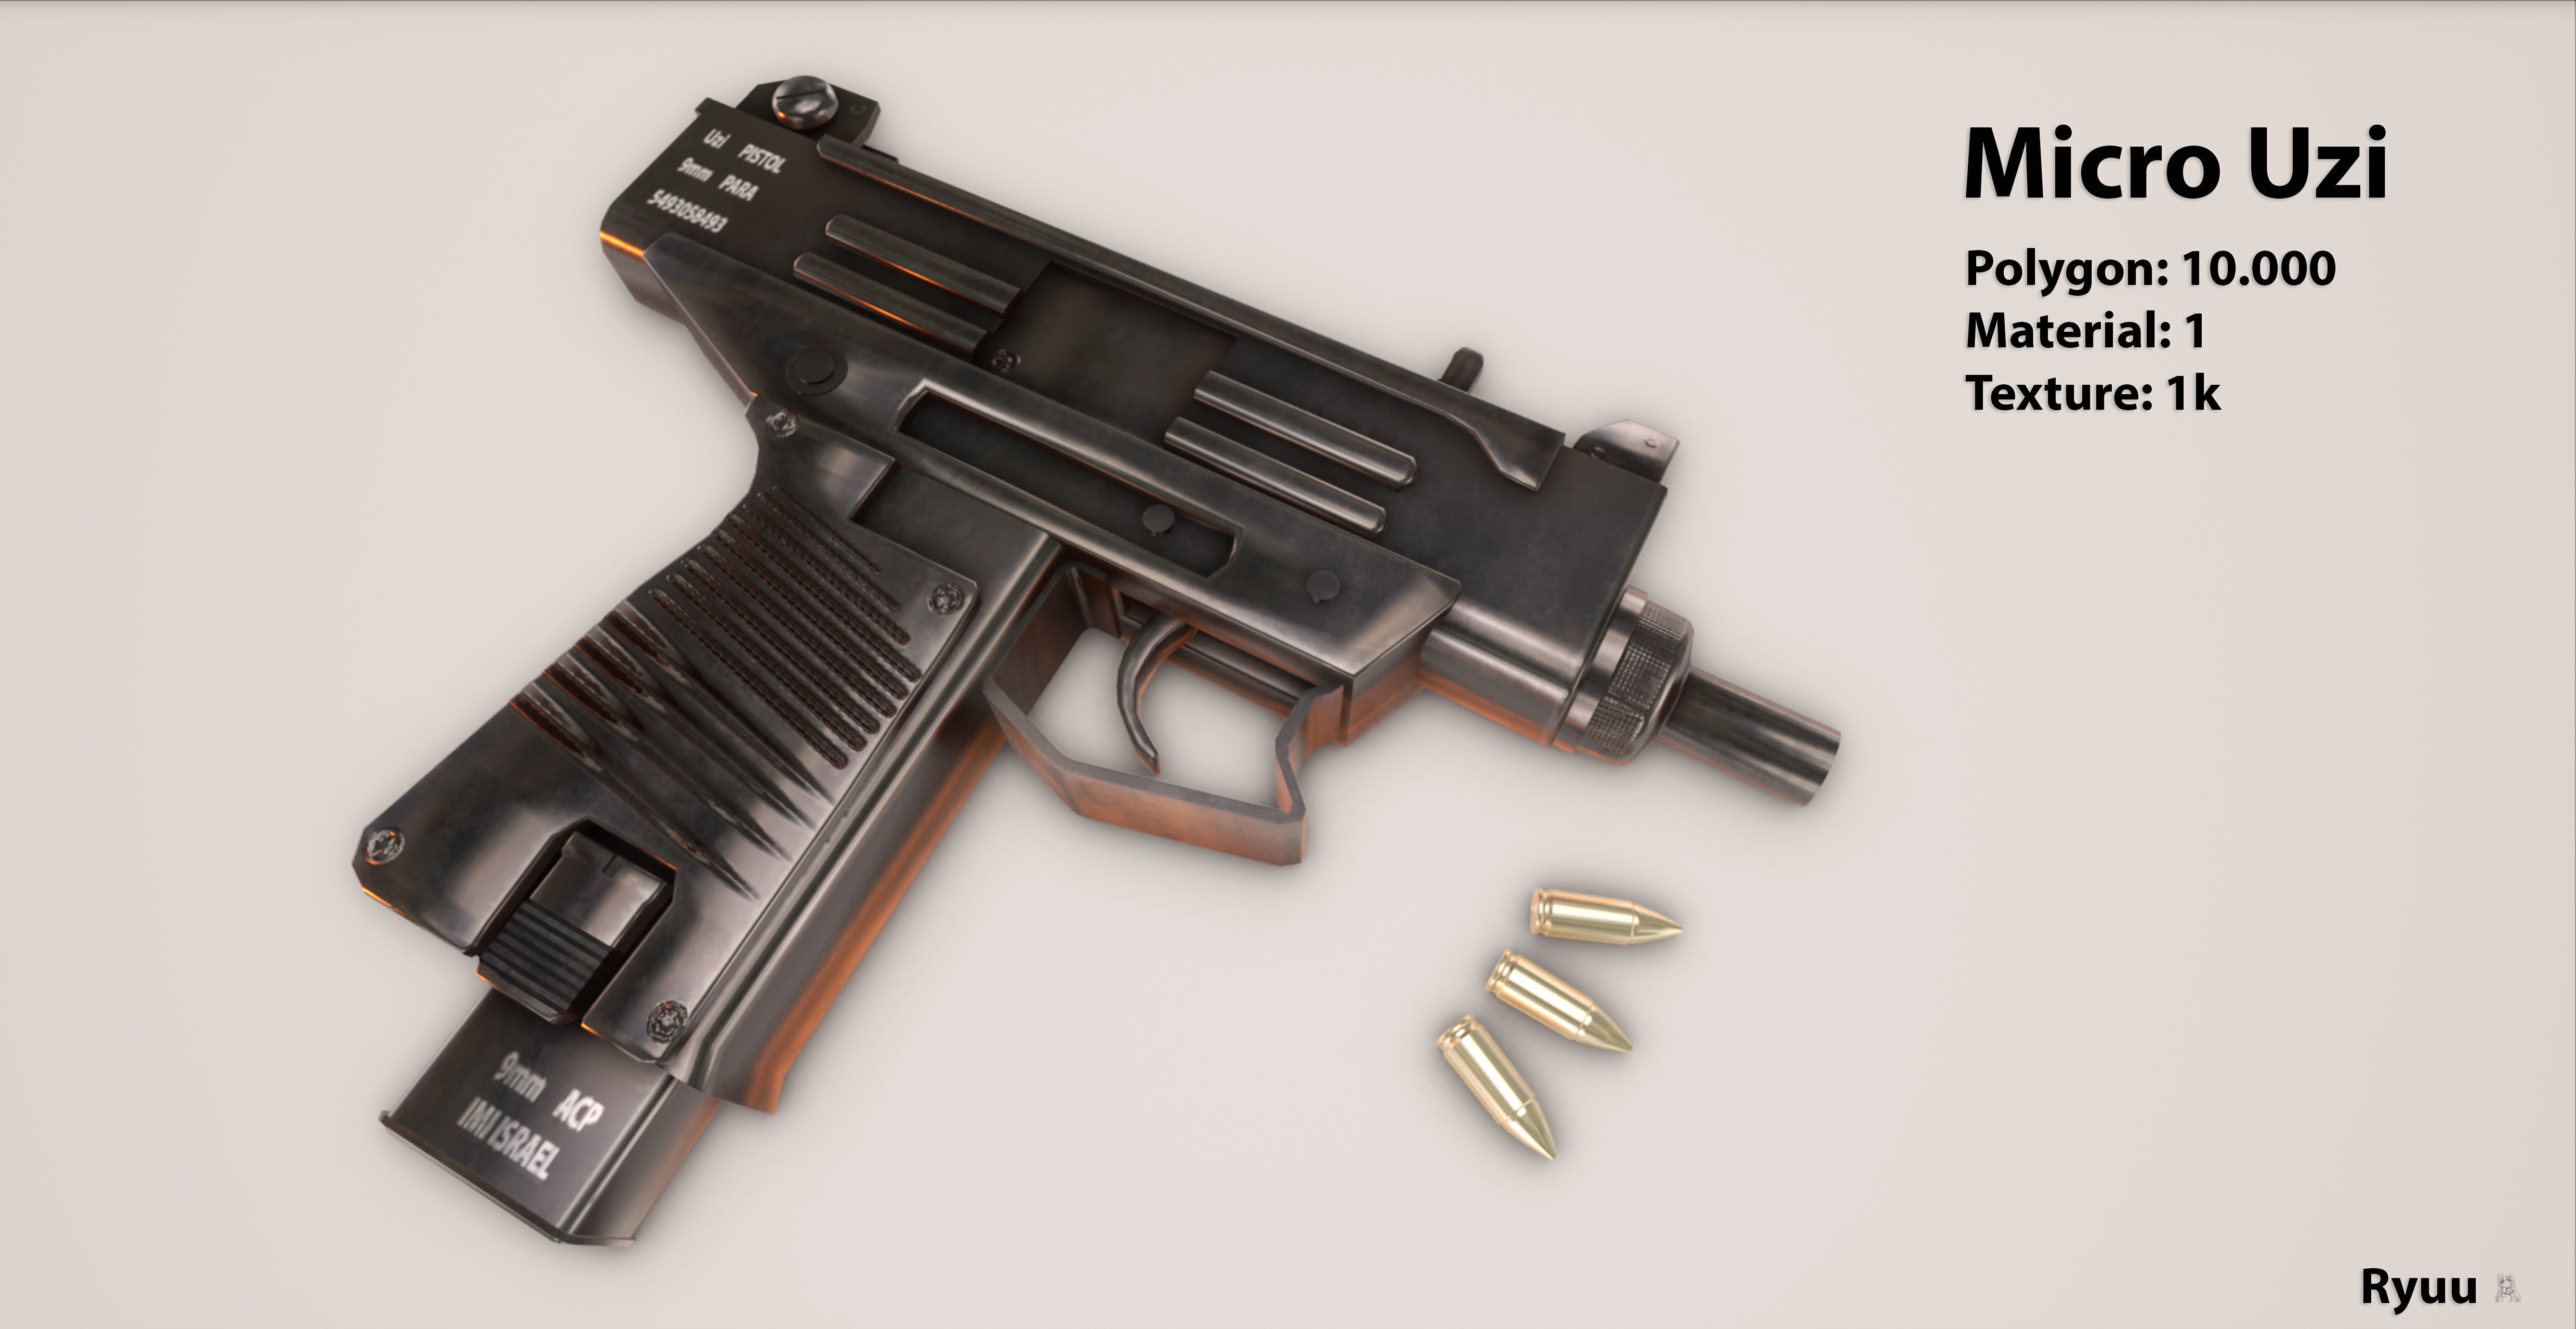 3d Model Low Poly Micro Uzi Cgtrader